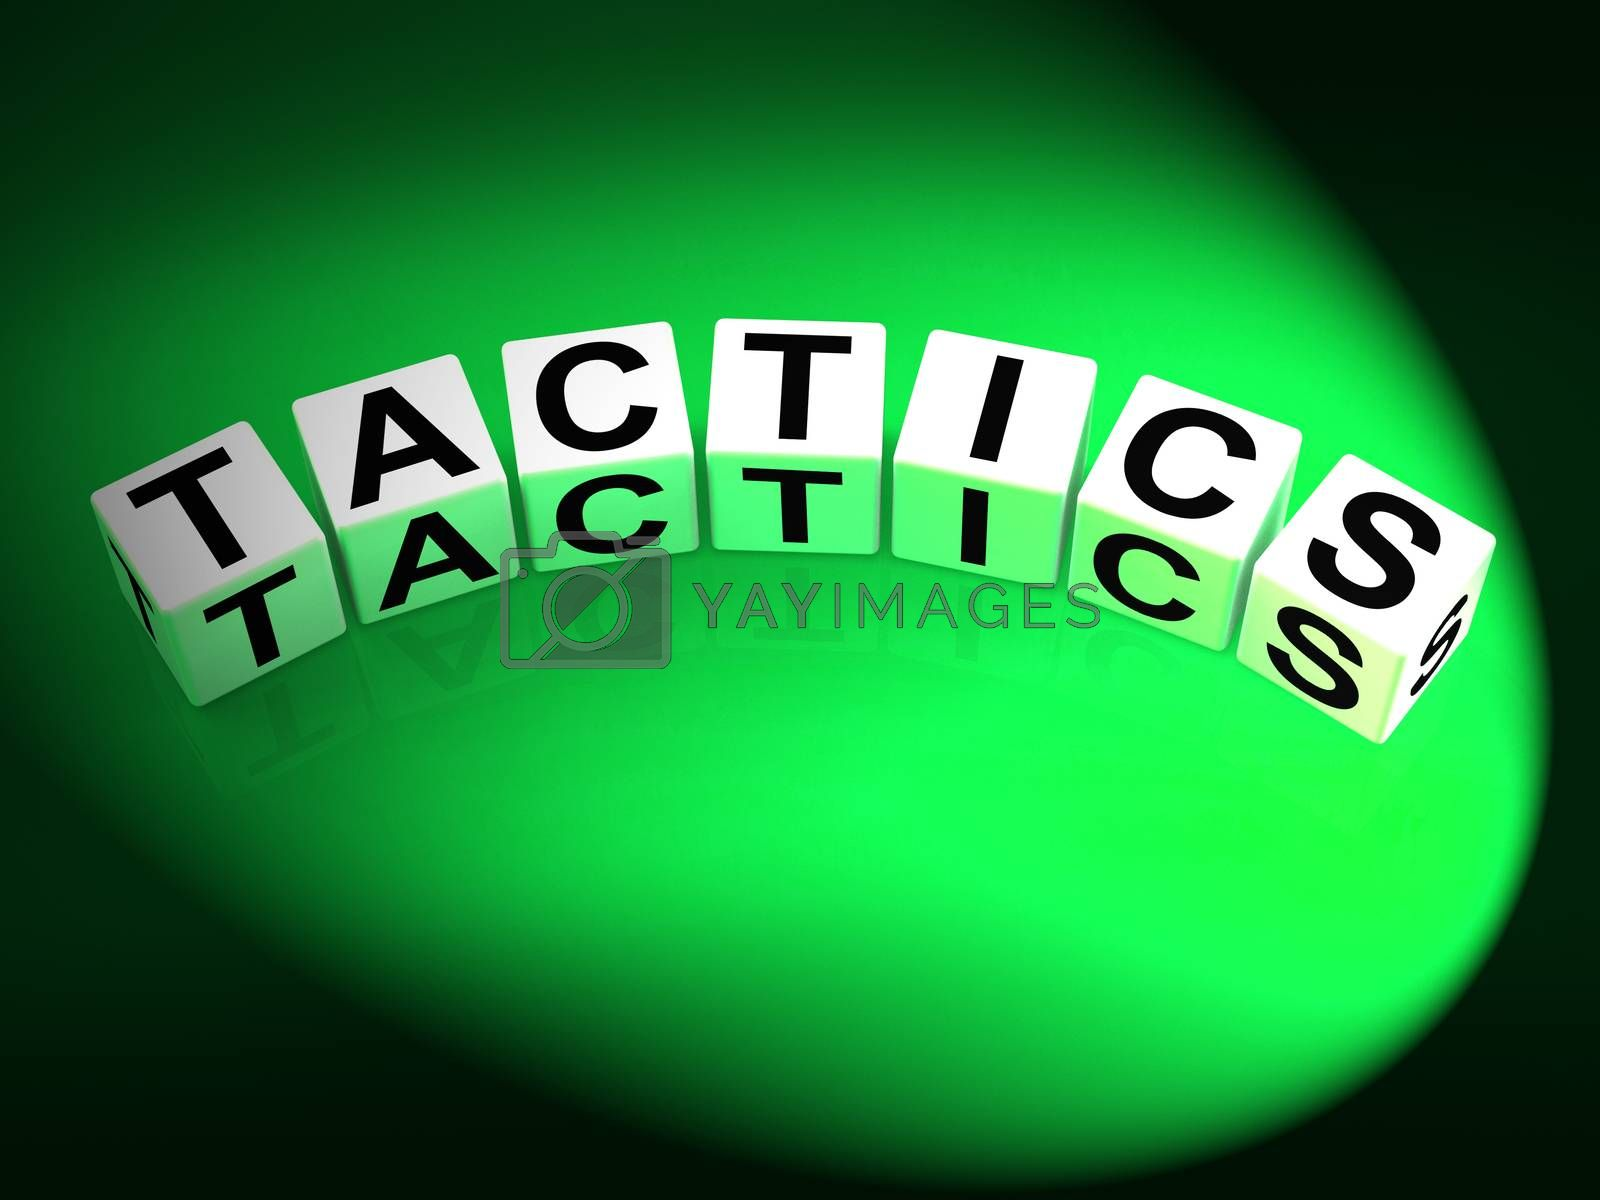 Tactics Dice Show Strategy Approach and Technique by stuartmiles